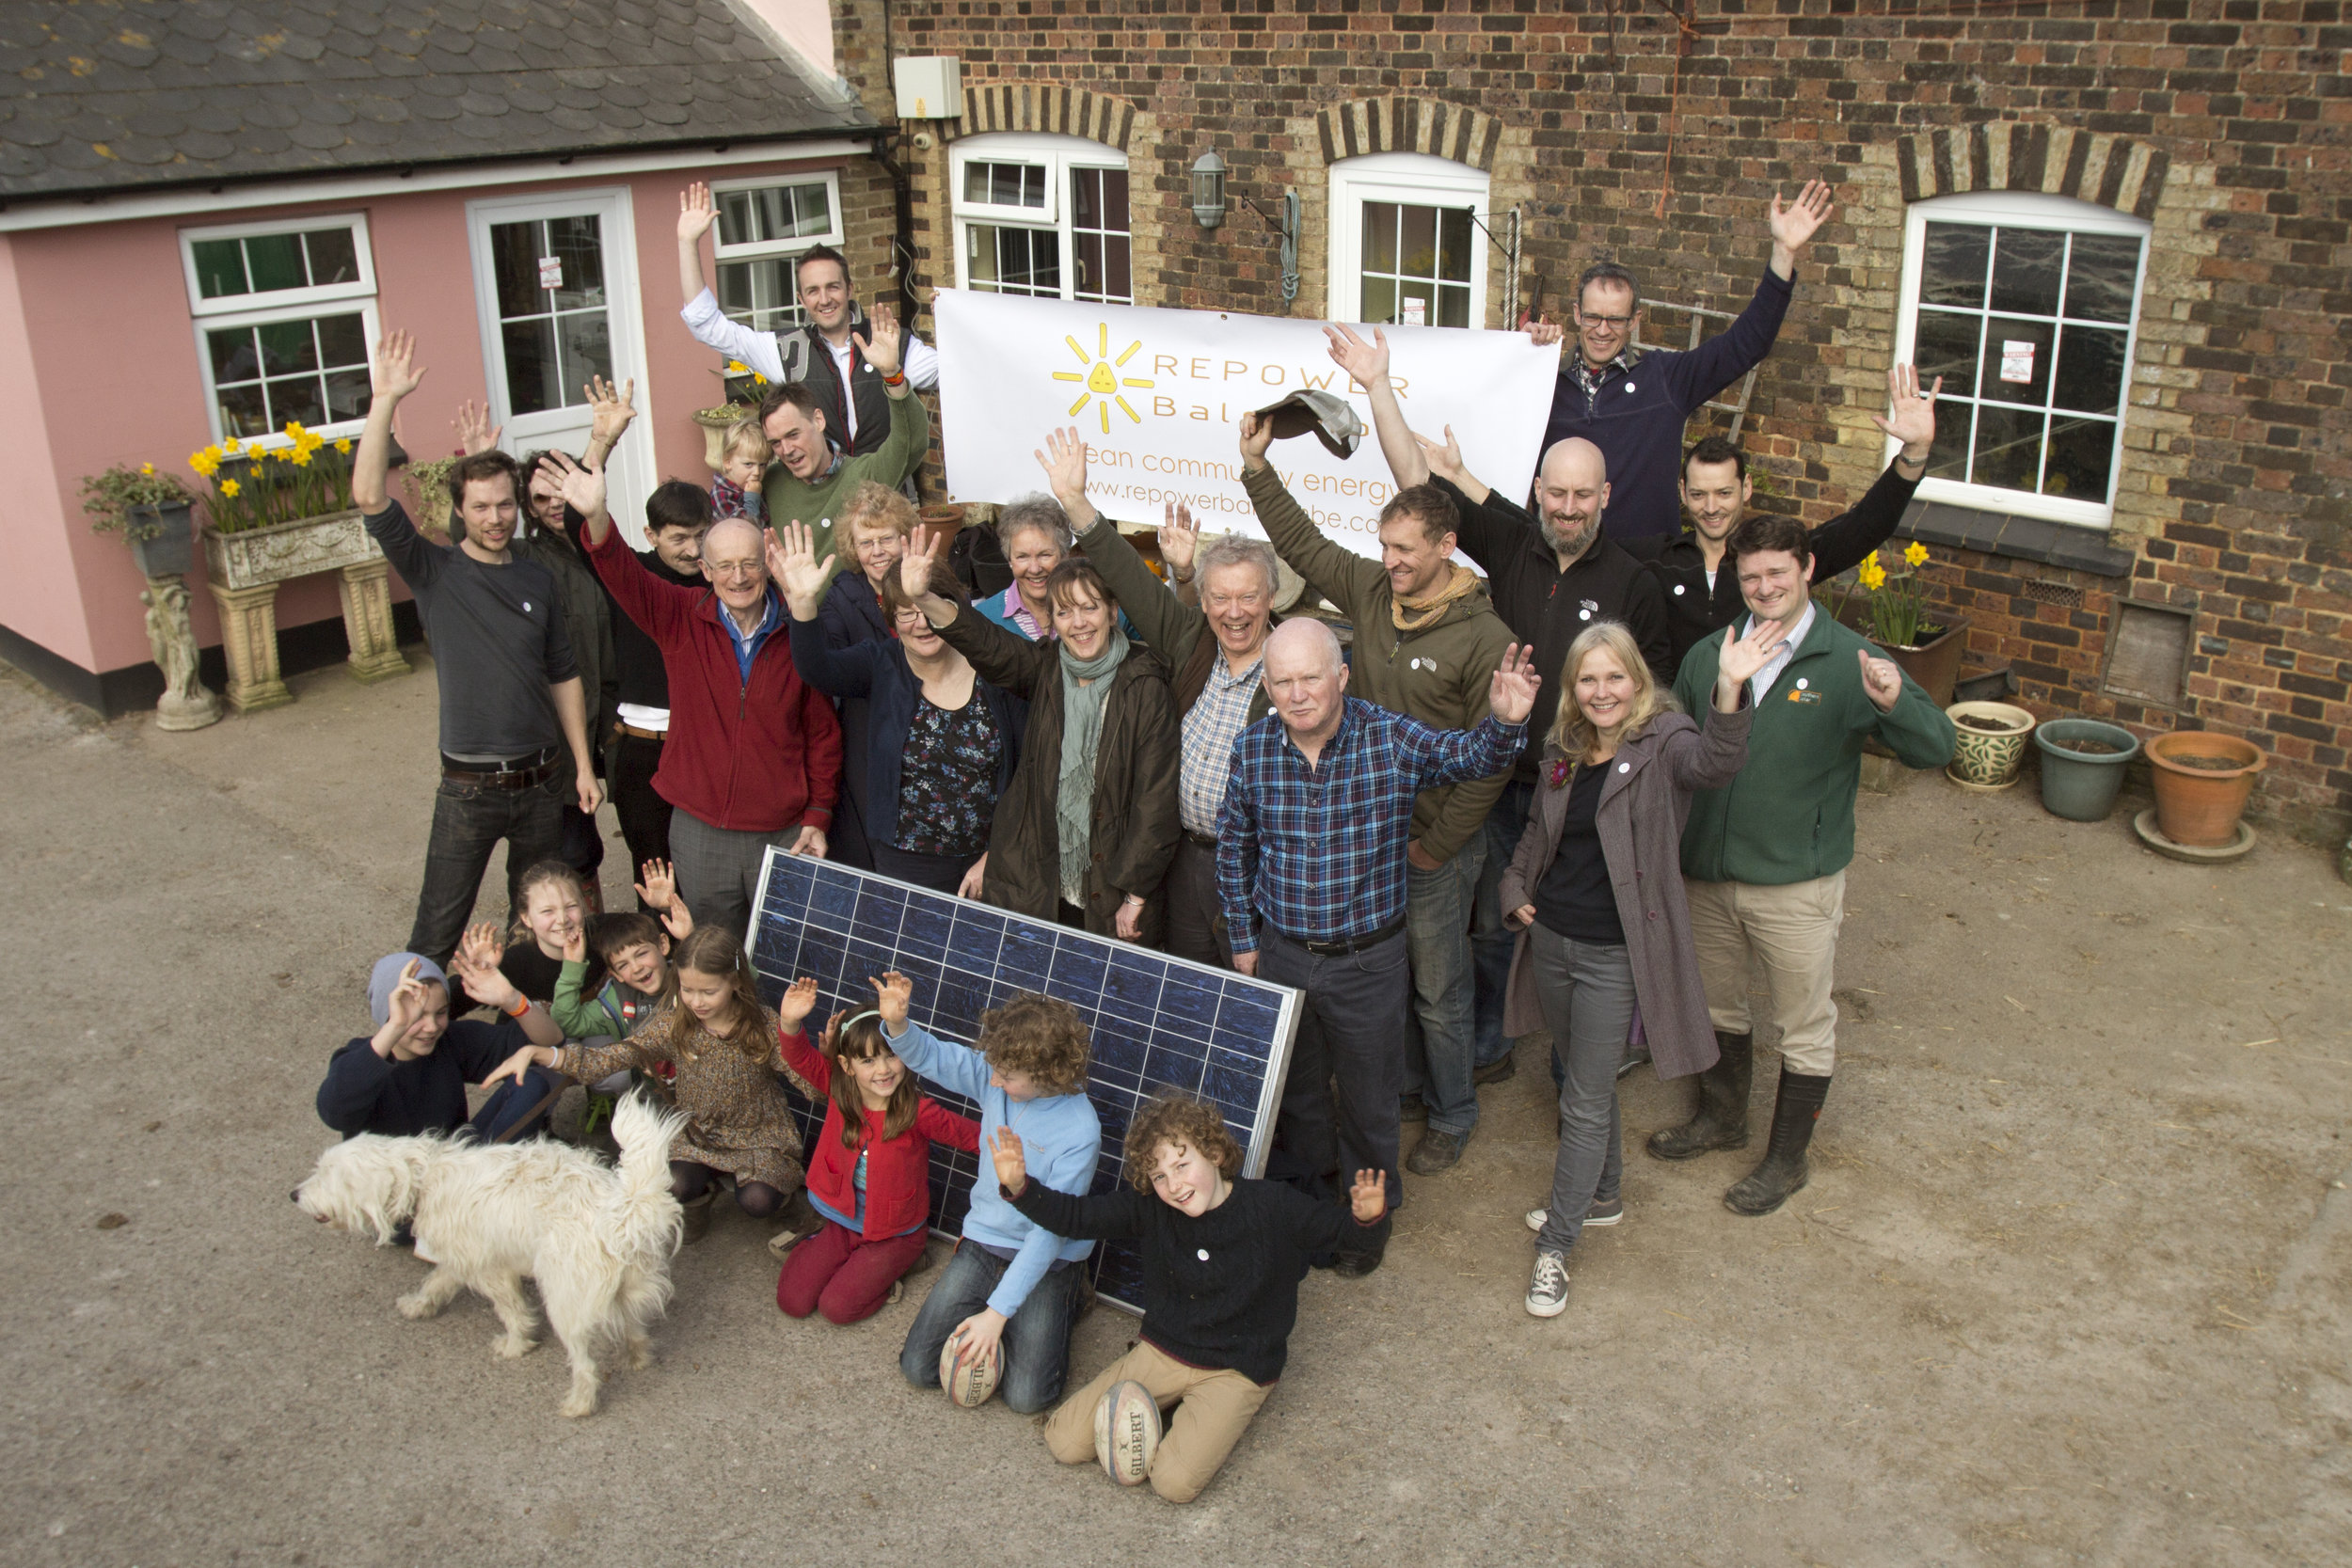 balcombe residents and dog hold 'repower balcombe' sign and cheer